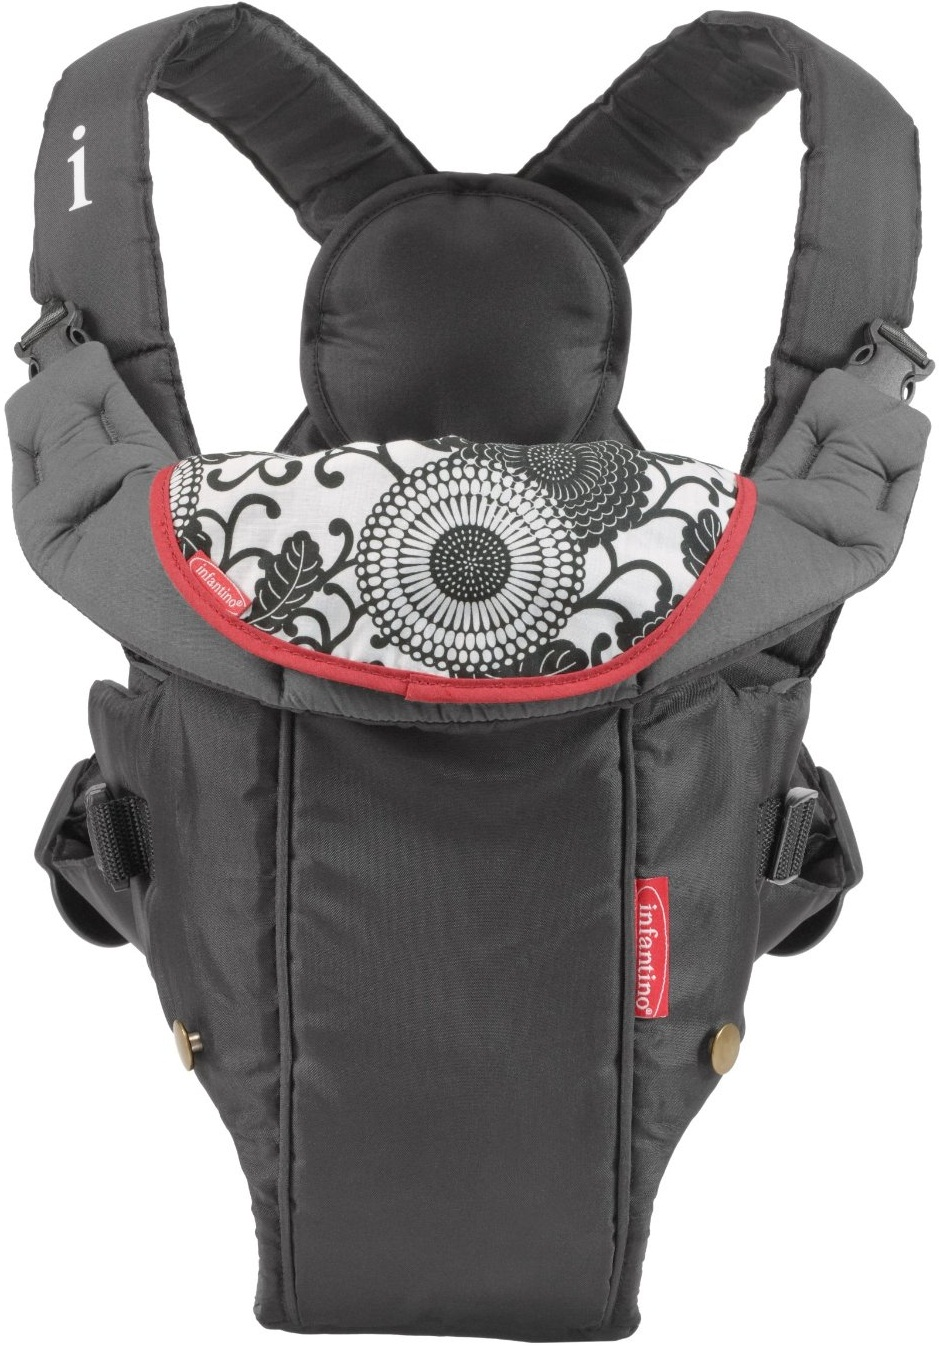 Infantino Swift Classic Baby Carrier Black Baby Cinema